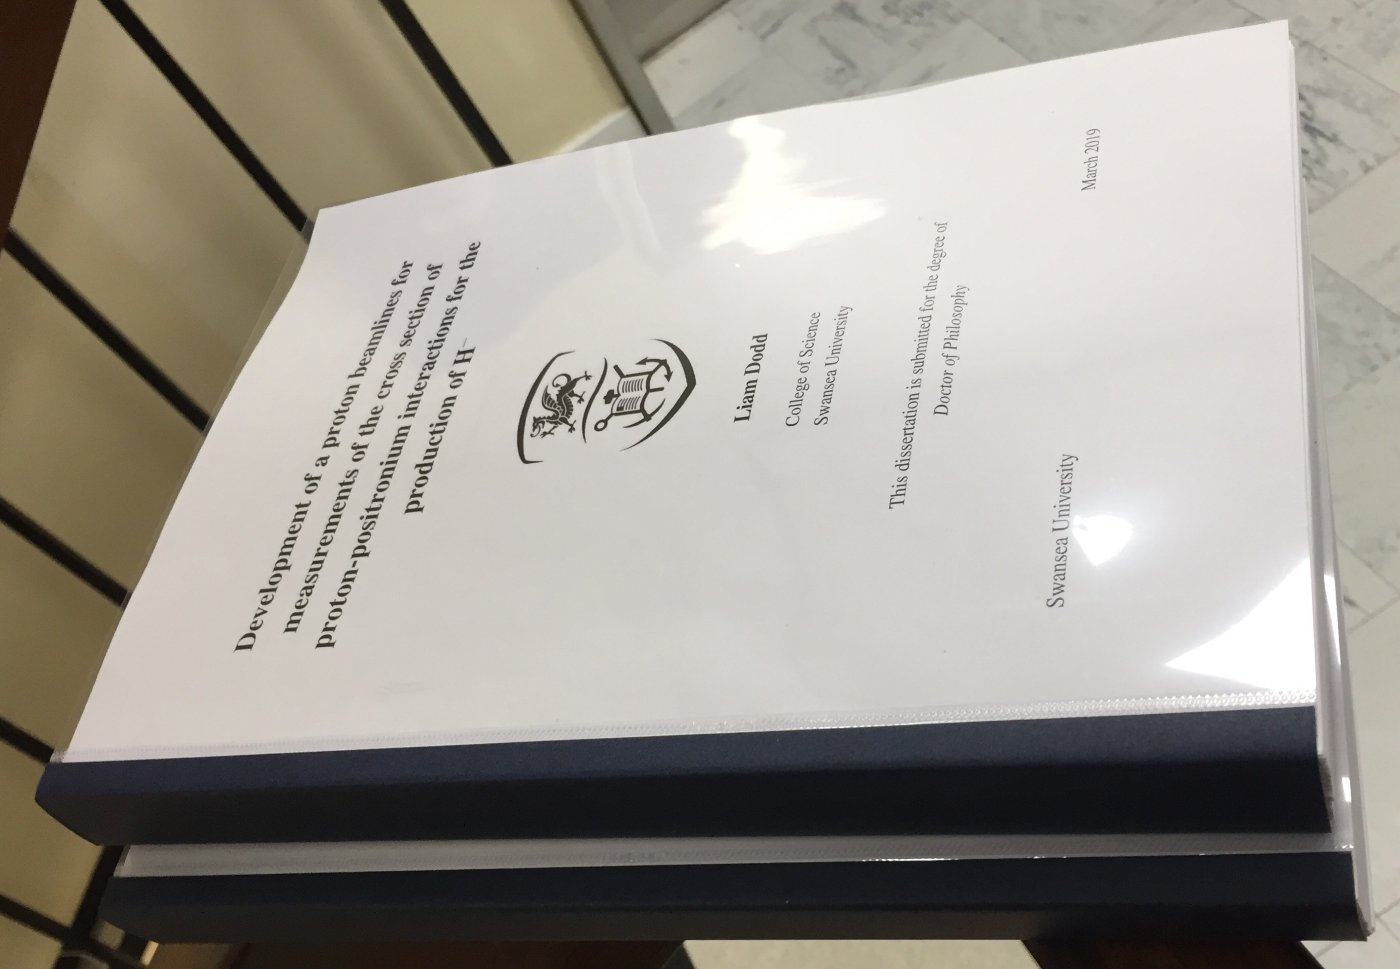 A finished thesis, balanced precariously upon a Bannister on the 6th floor of Vivian Tower.